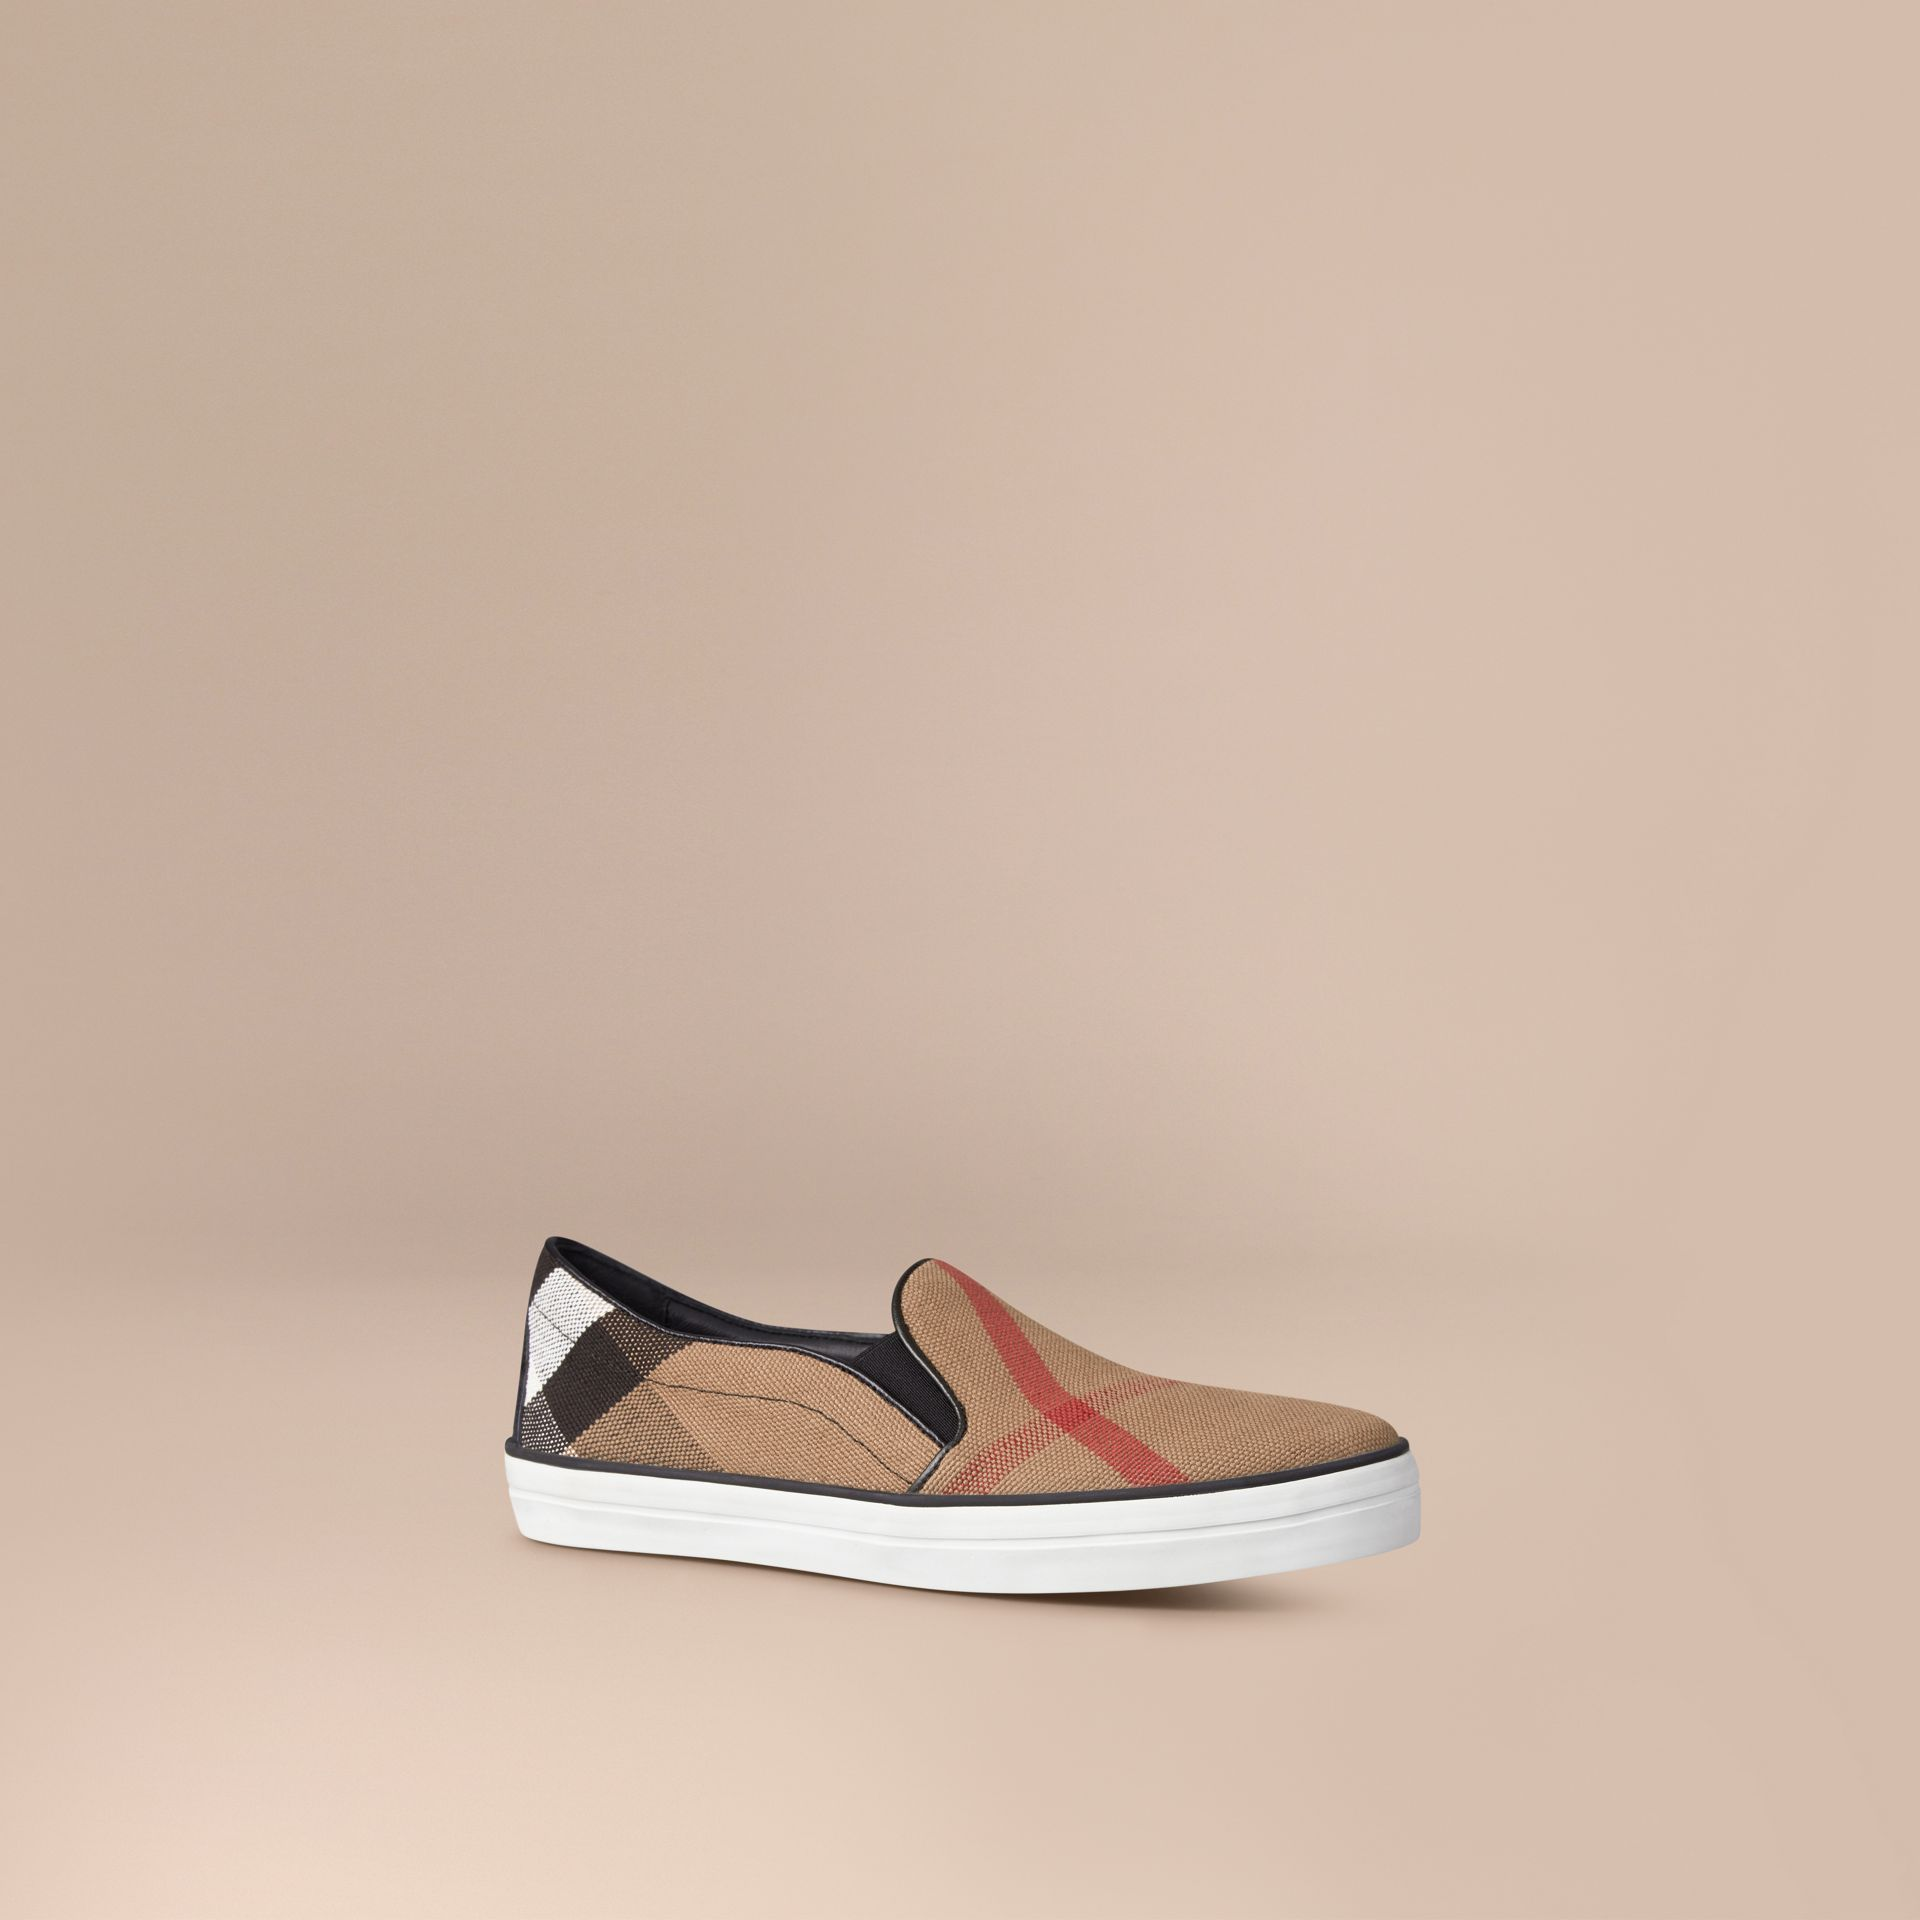 Canvas Check Slip-on Trainers in Black - Women | Burberry Canada - gallery image 1